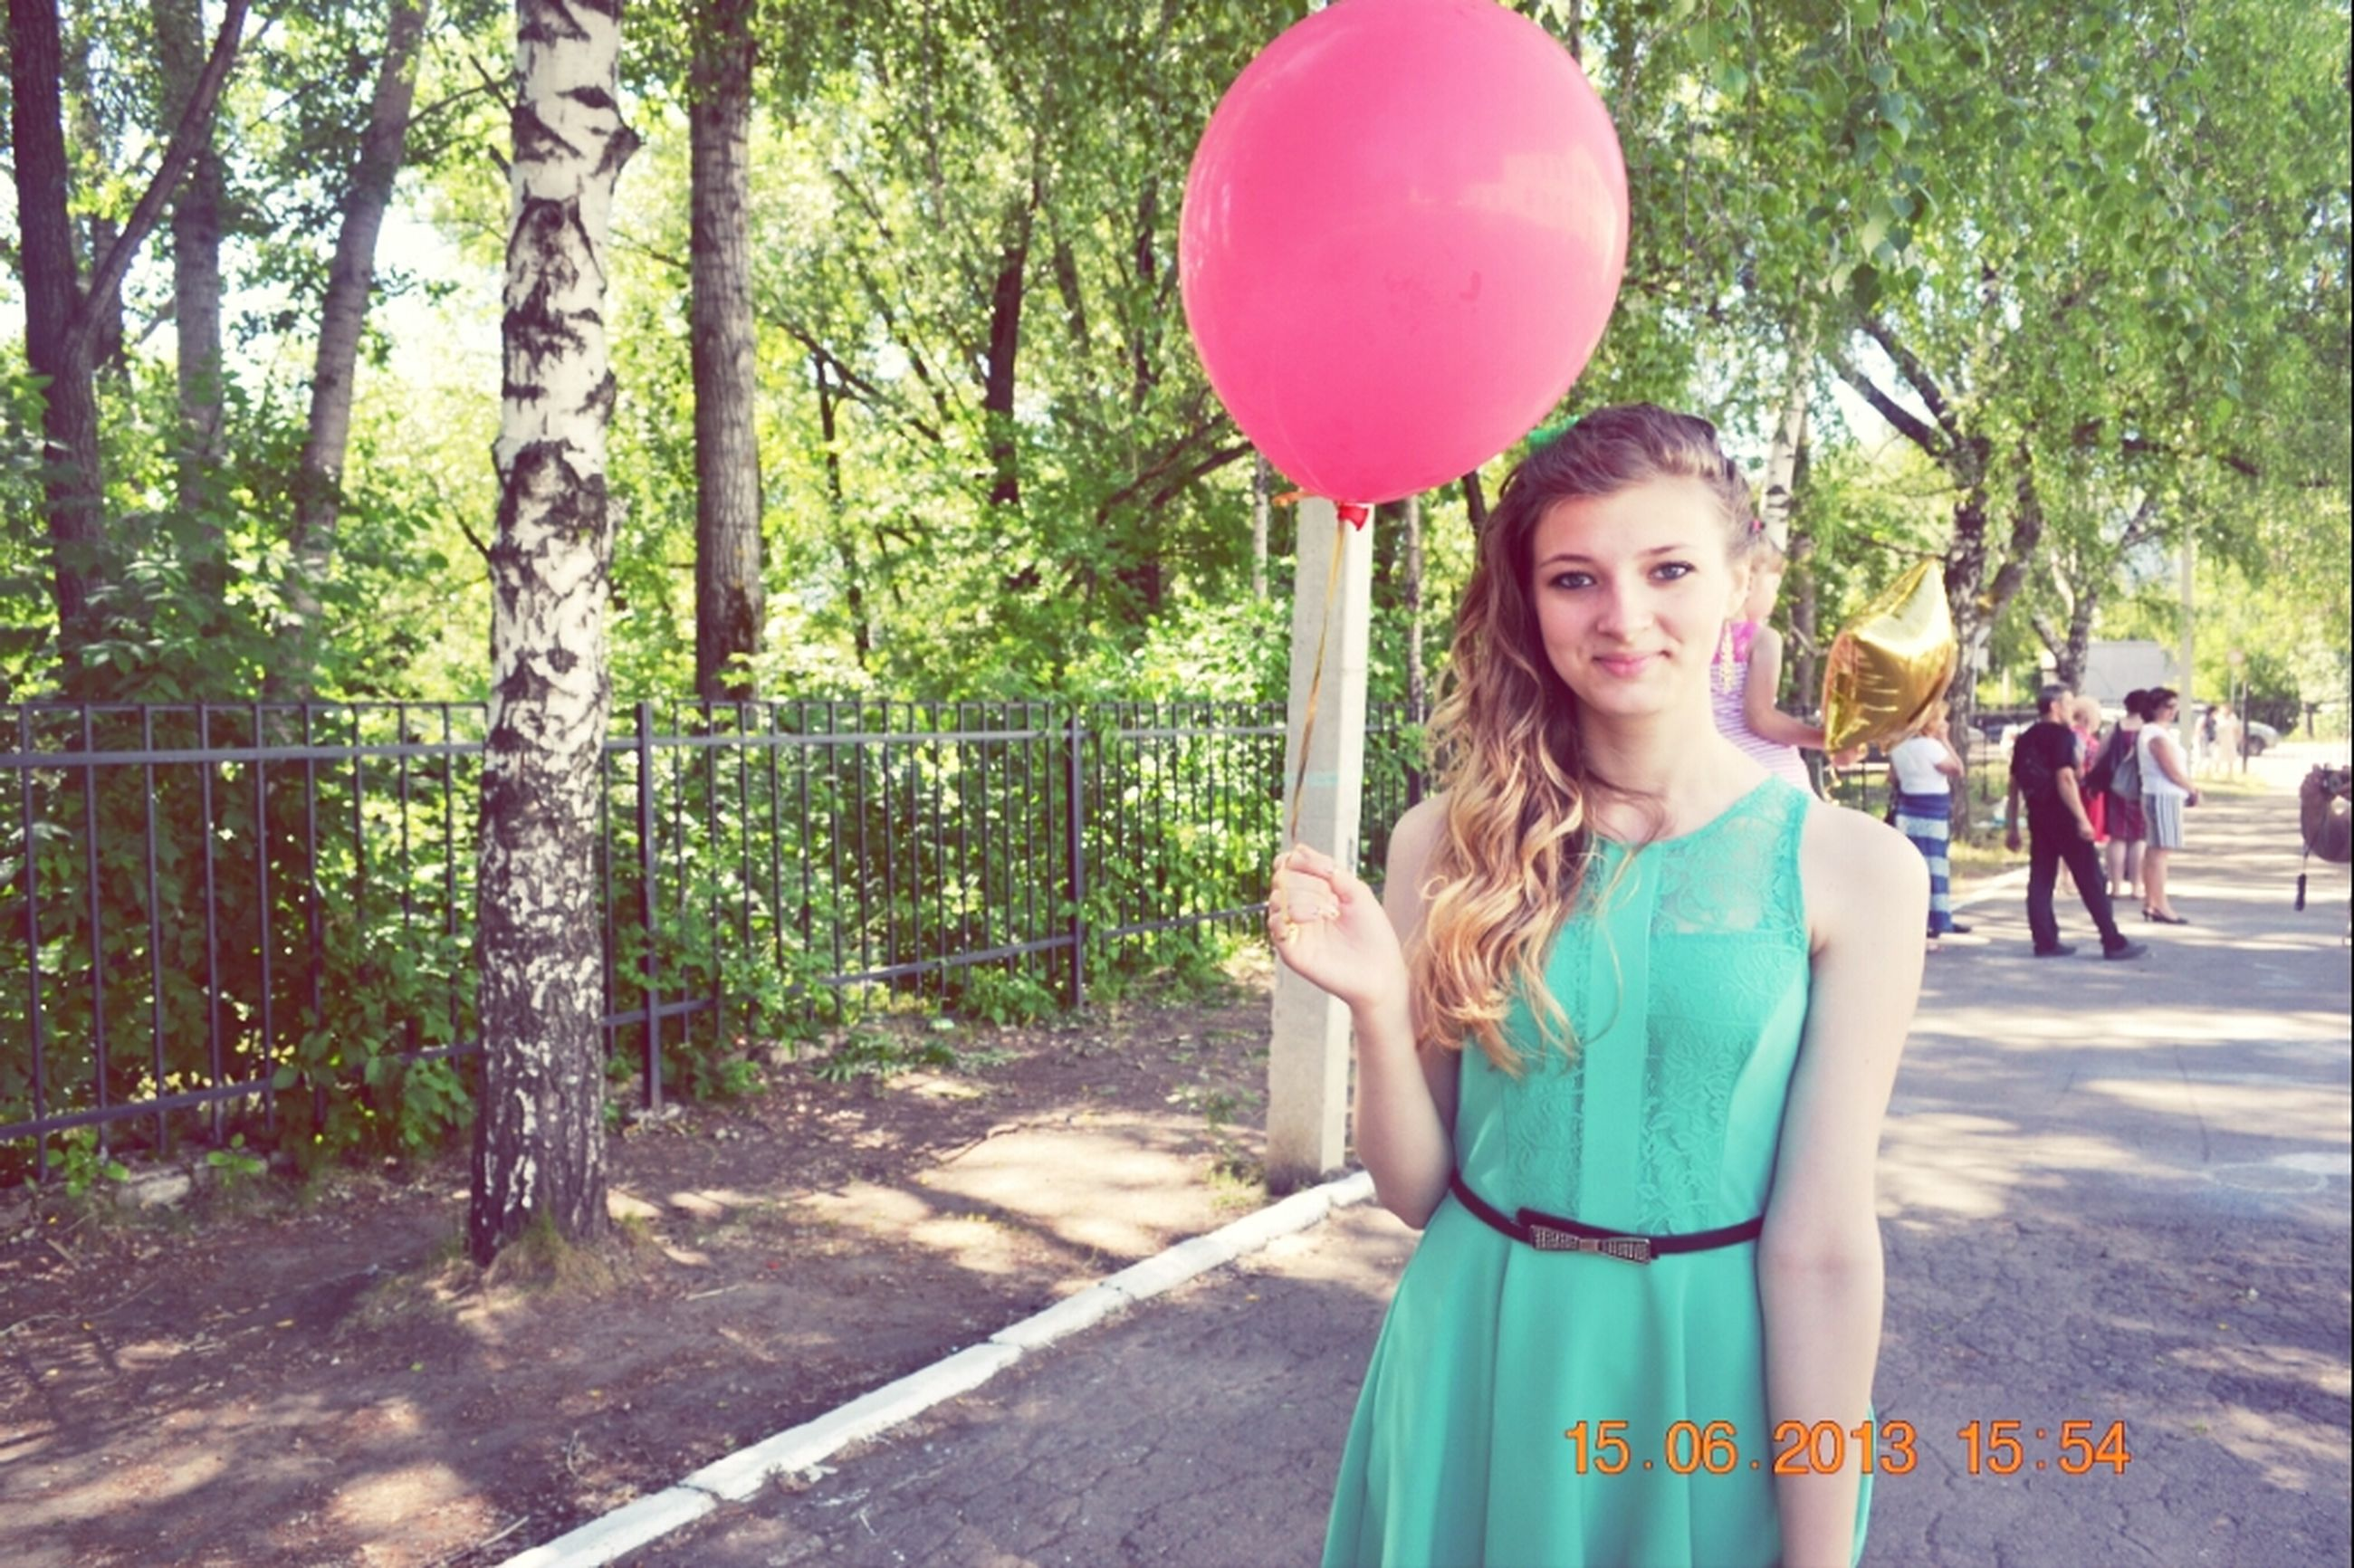 tree, leisure activity, lifestyles, childhood, girls, casual clothing, standing, park - man made space, elementary age, boys, person, balloon, full length, fun, enjoyment, front view, holding, playing